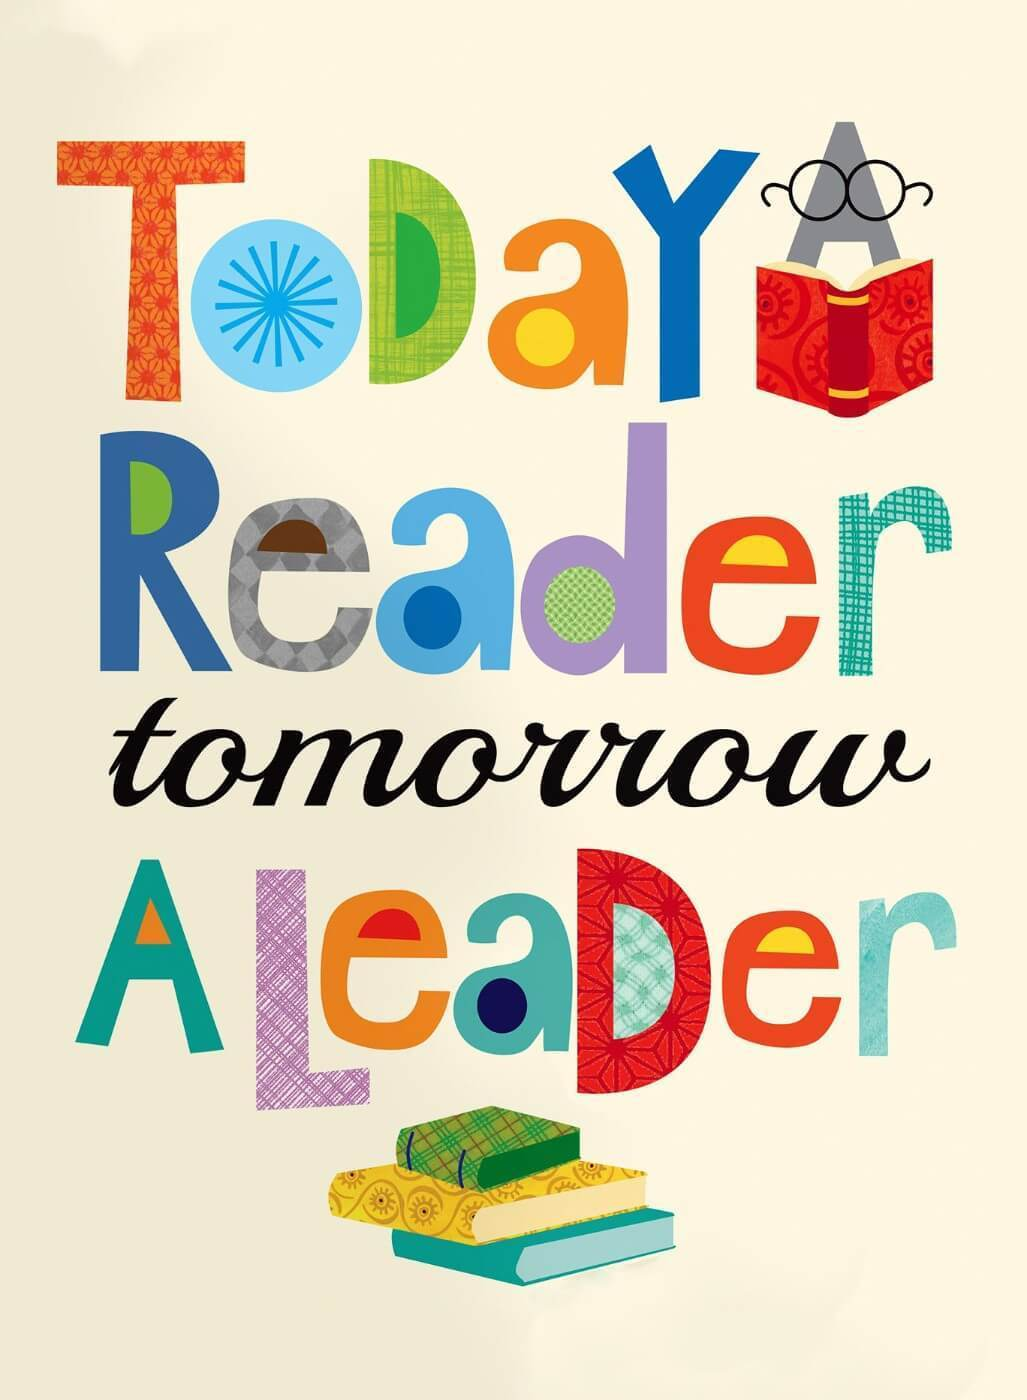 Today A Reader Tomorrow A Leader - Canvas Prints by Tallenge Store | Buy  Posters, Frames, Canvas & Digital Art Prints | Small, Compact, Medium and  Large Variants